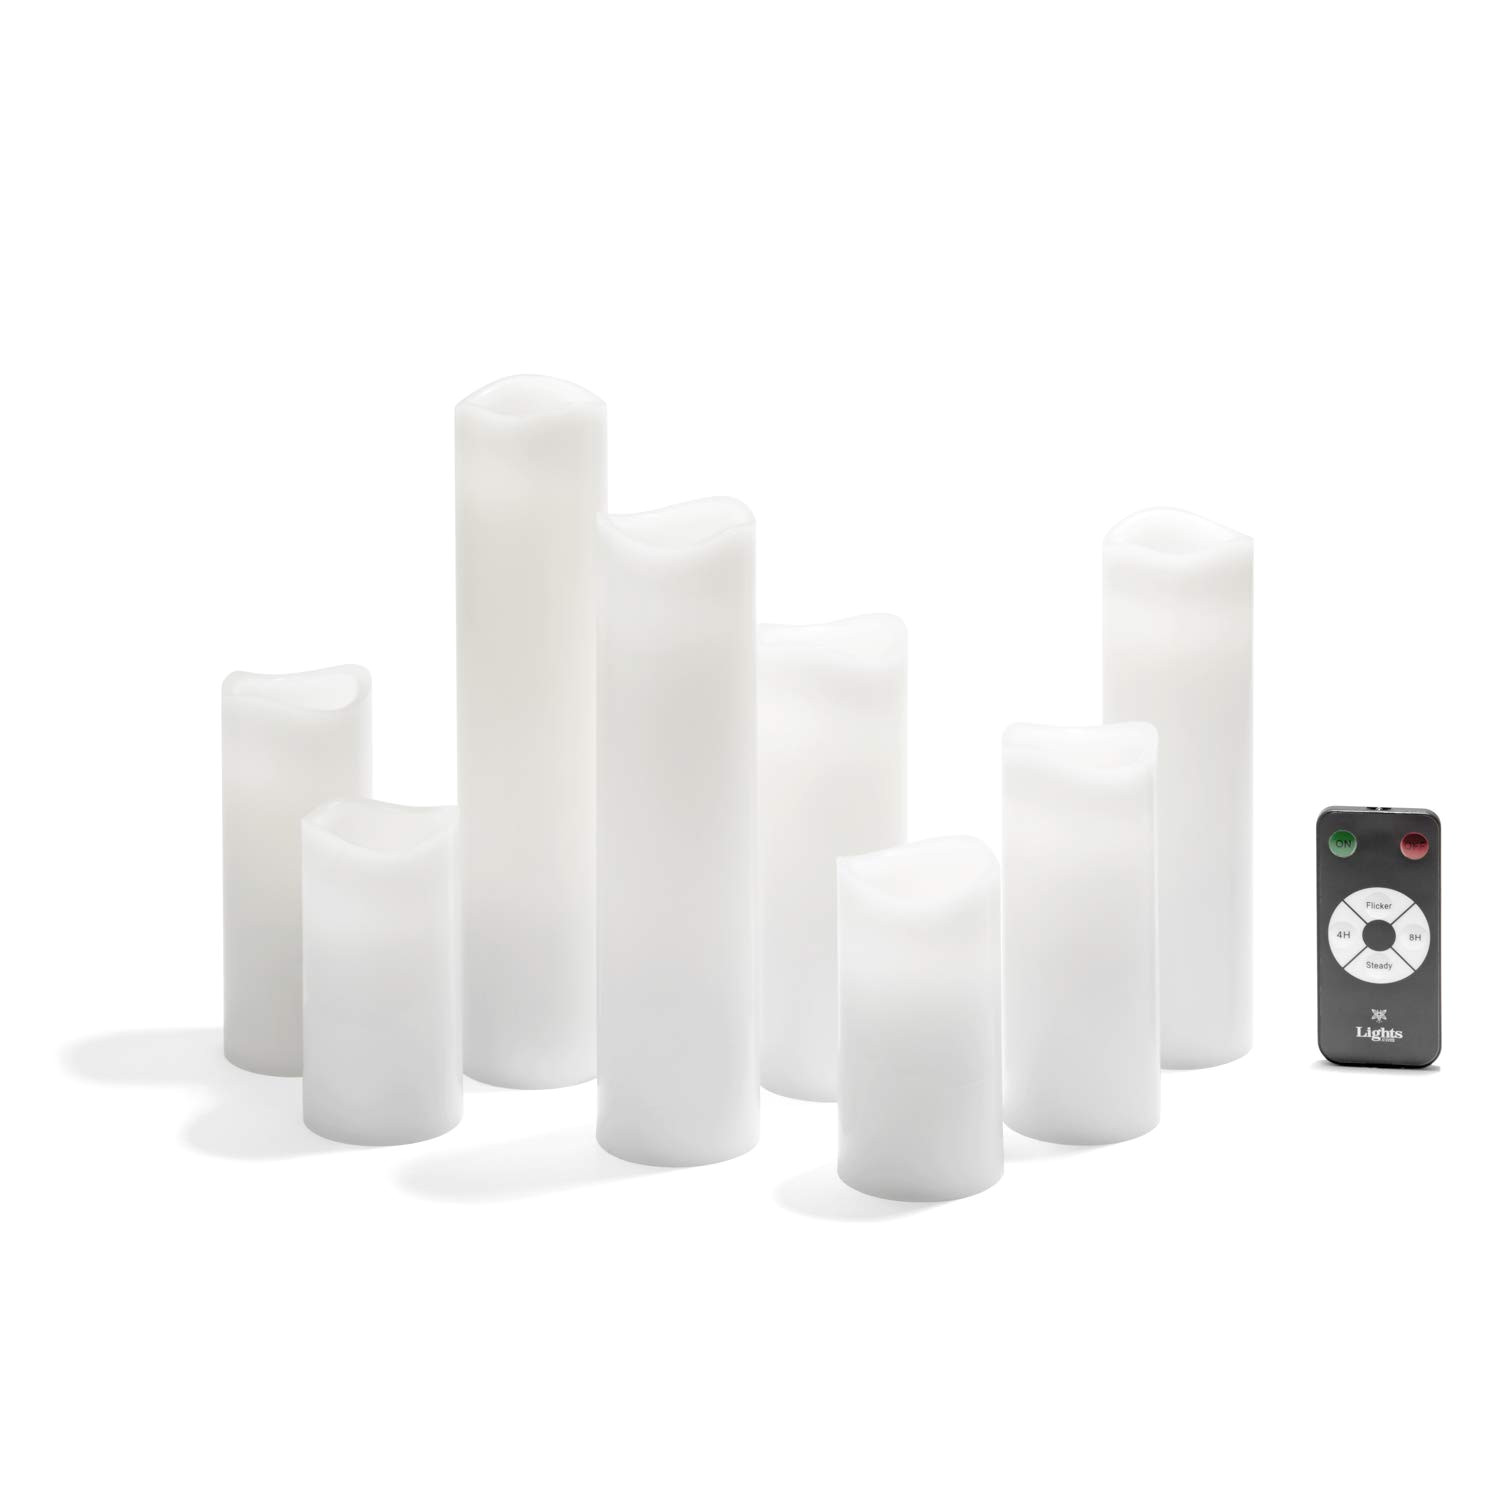 amazon com 8 ivory slim flameless candles with warm white leds smooth finish assorted sizes remote and batteries included home improvement